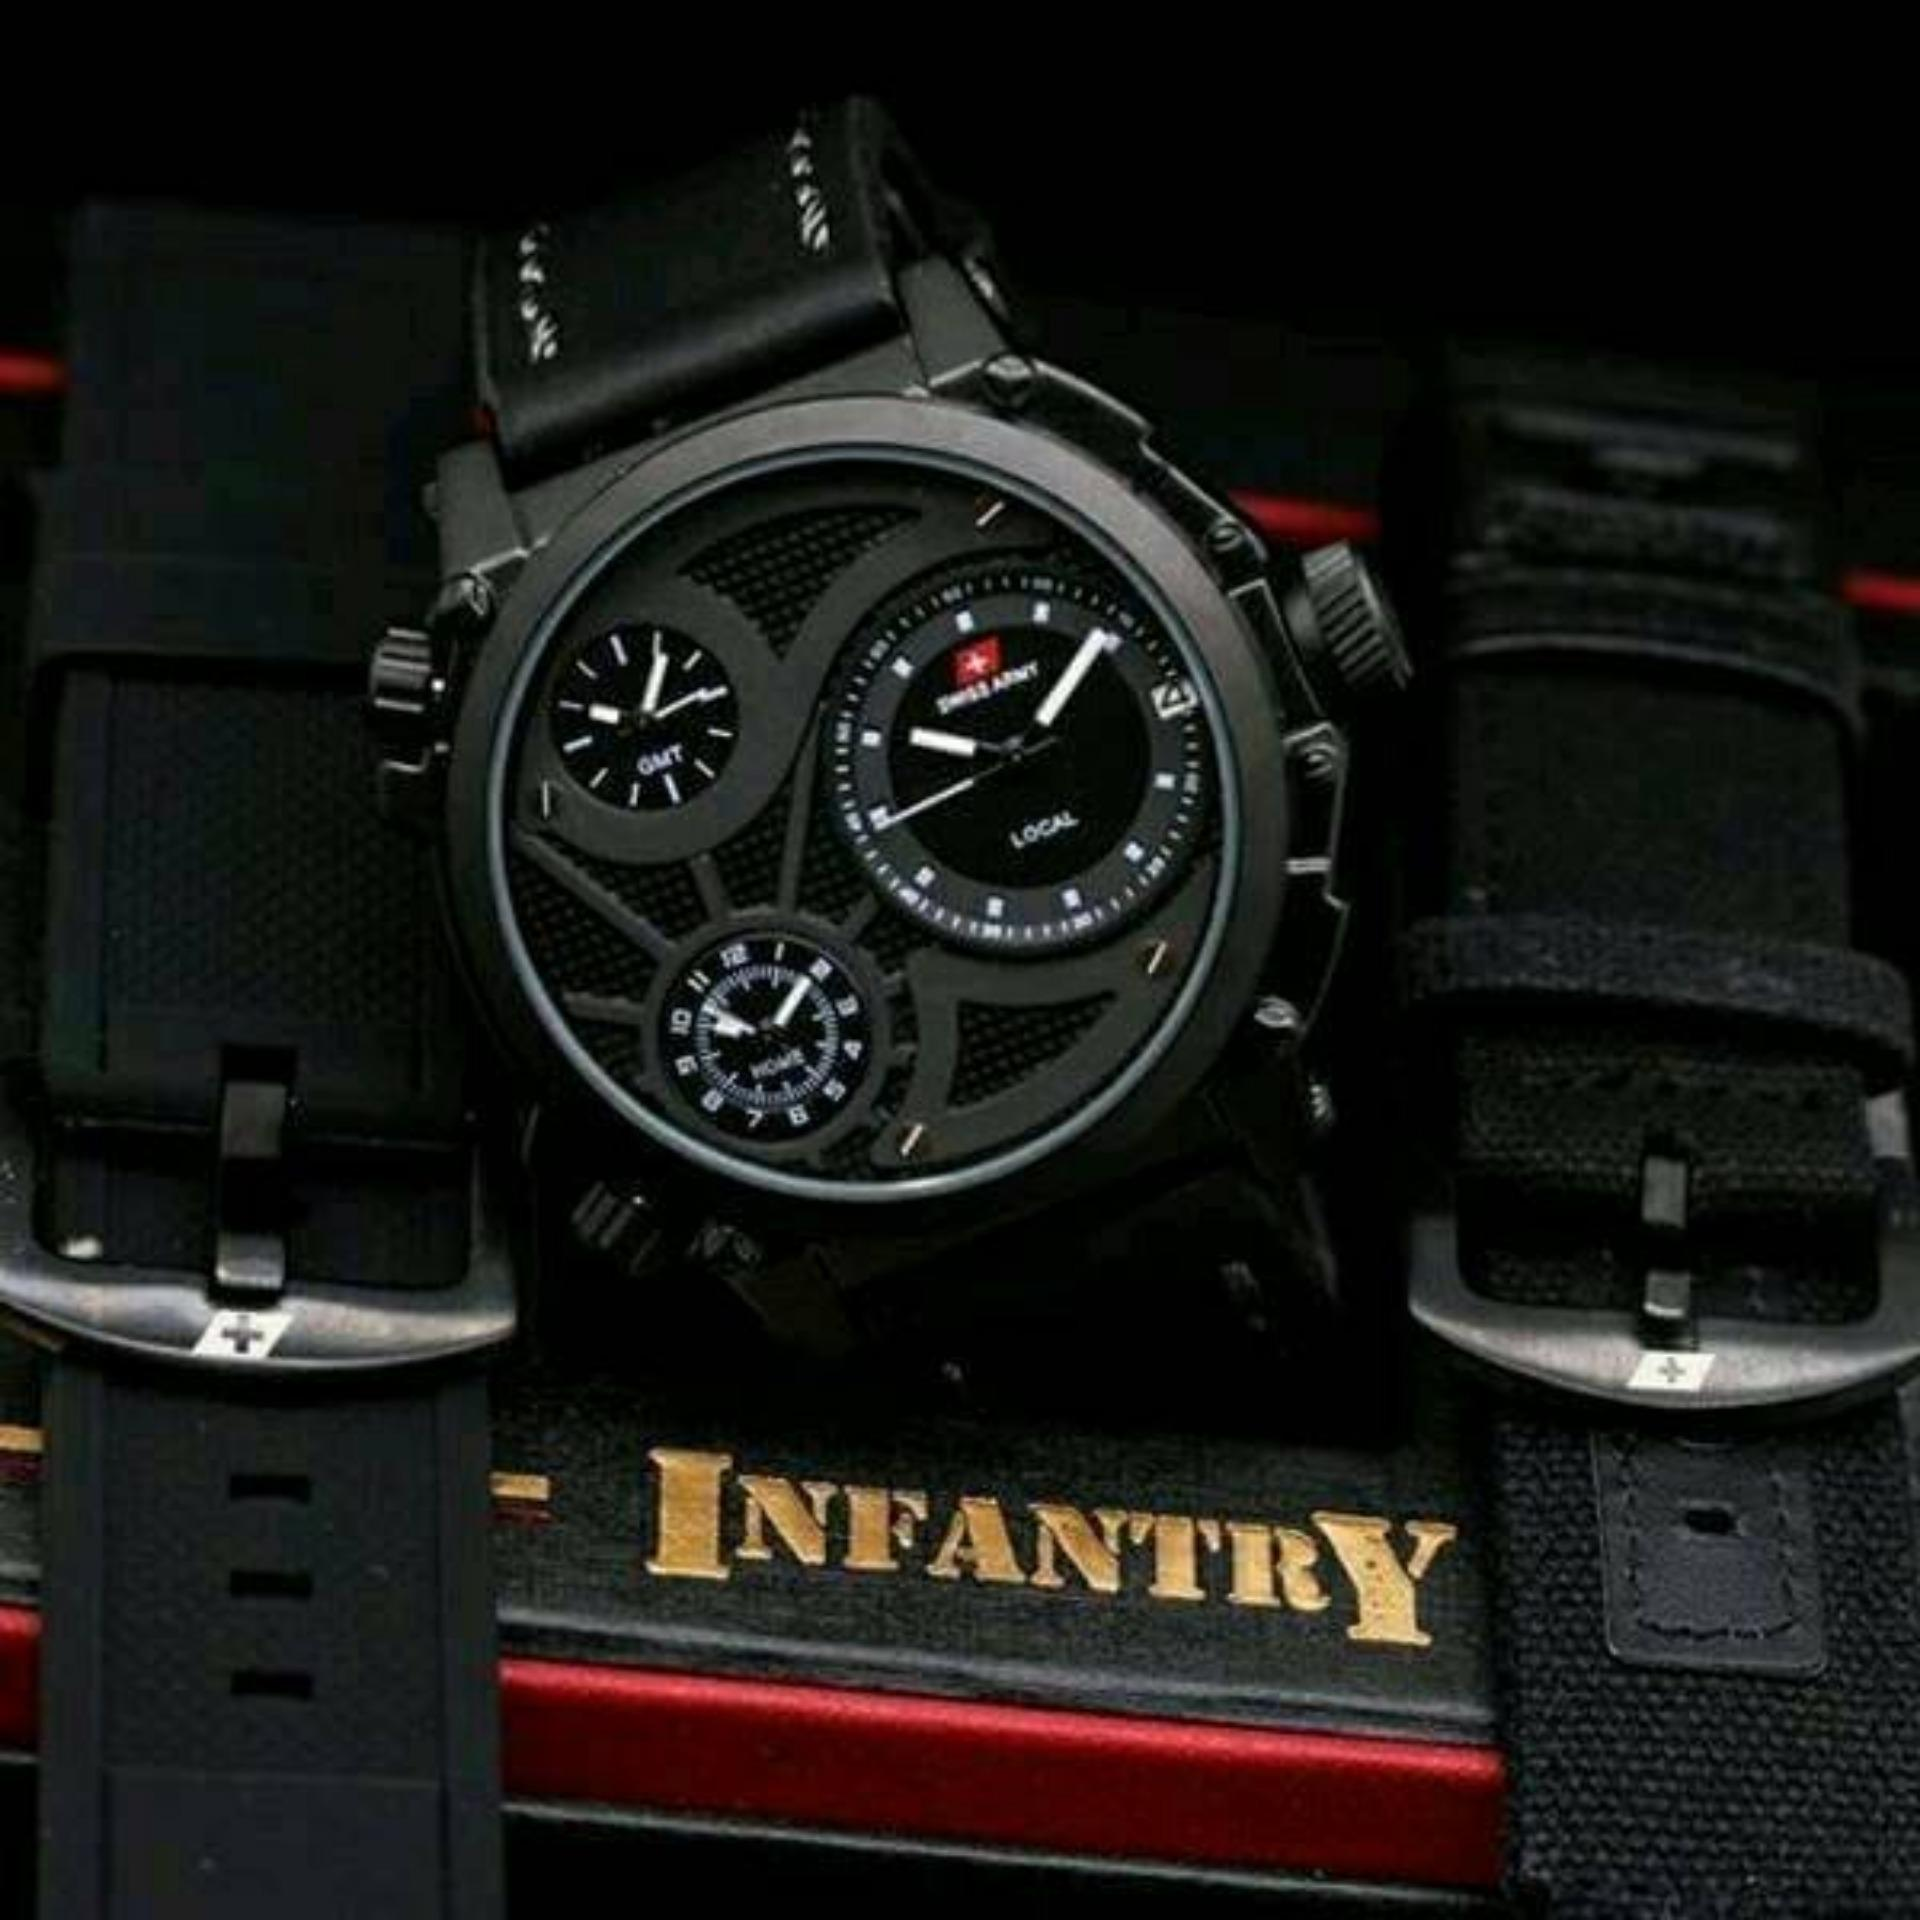 Flash Sale Original Swiss Army Infantry Limited Edition - Jam tangan Pria  Premium Leather Strap 41926104e3